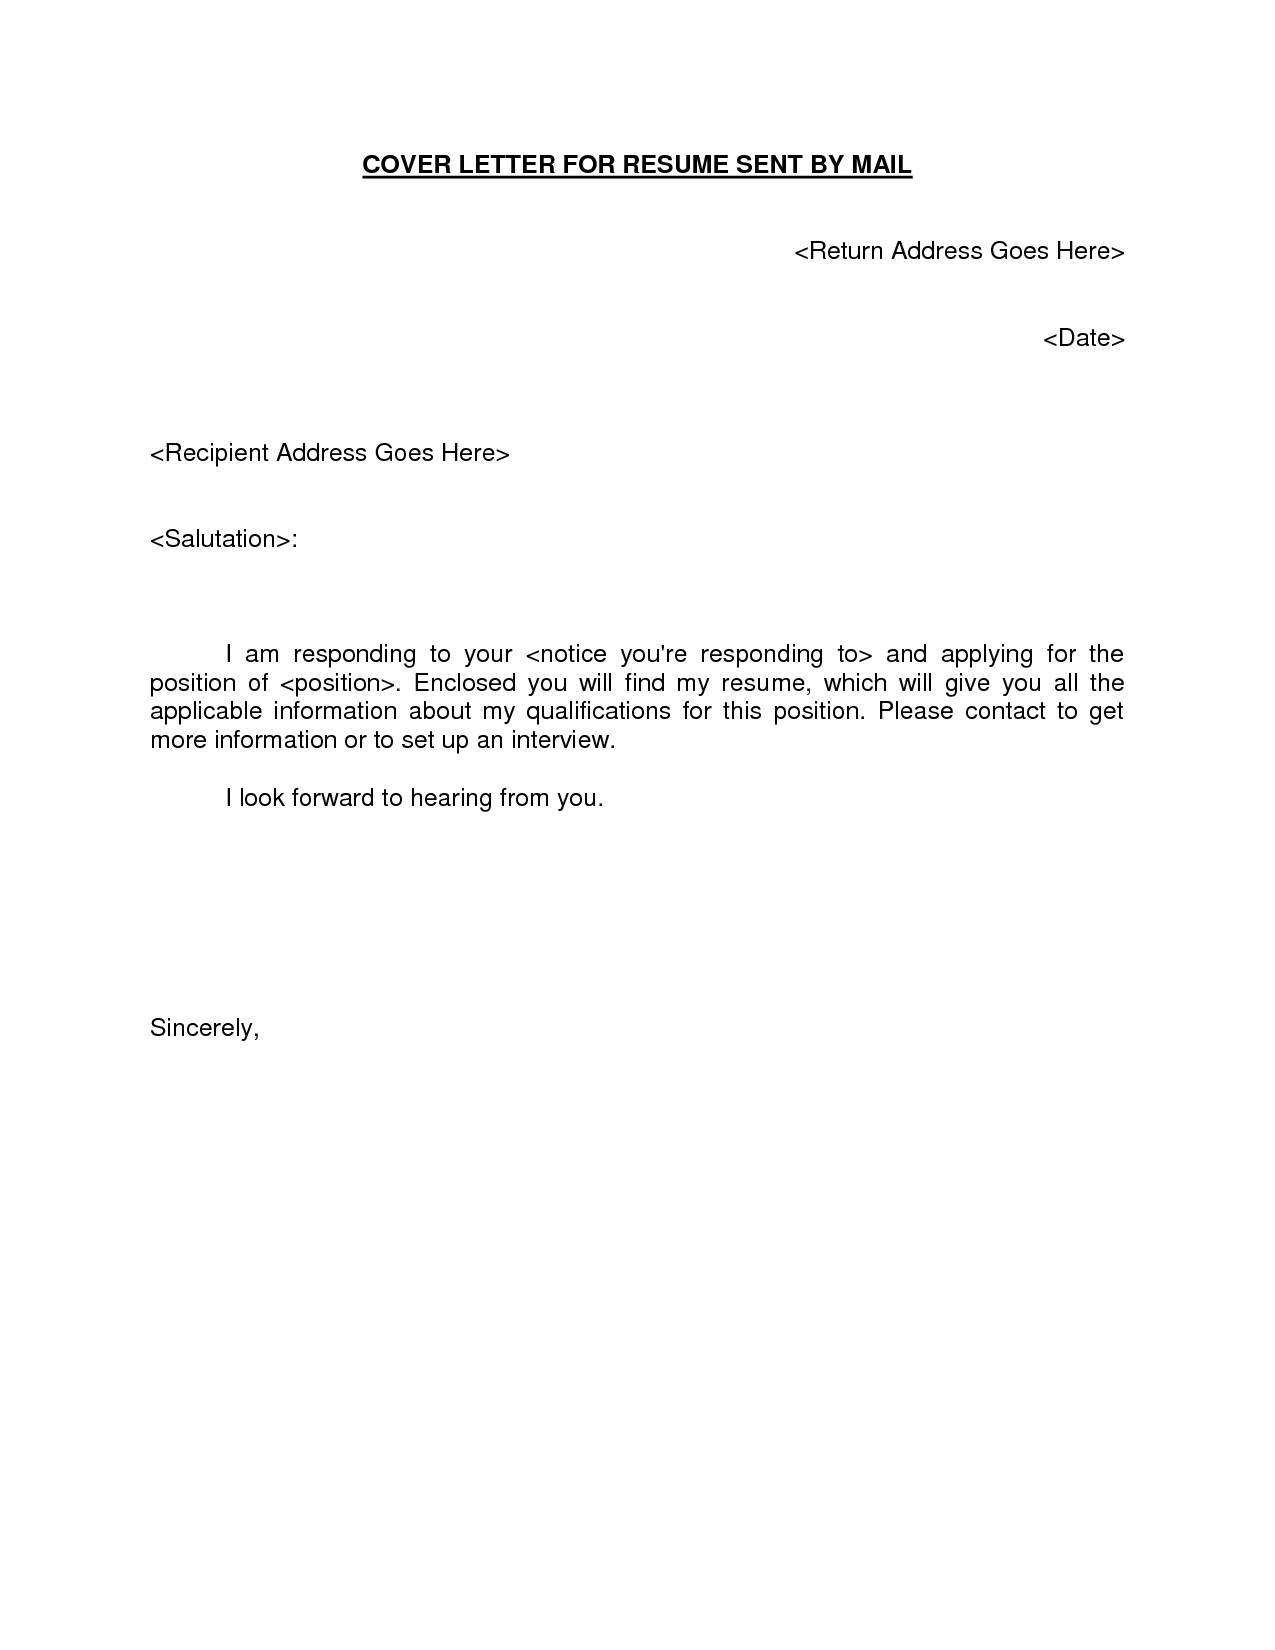 Example Of Covering Letter to Go with Cv Email Resume Cover Letter Template Learnhowtoloseweight Net